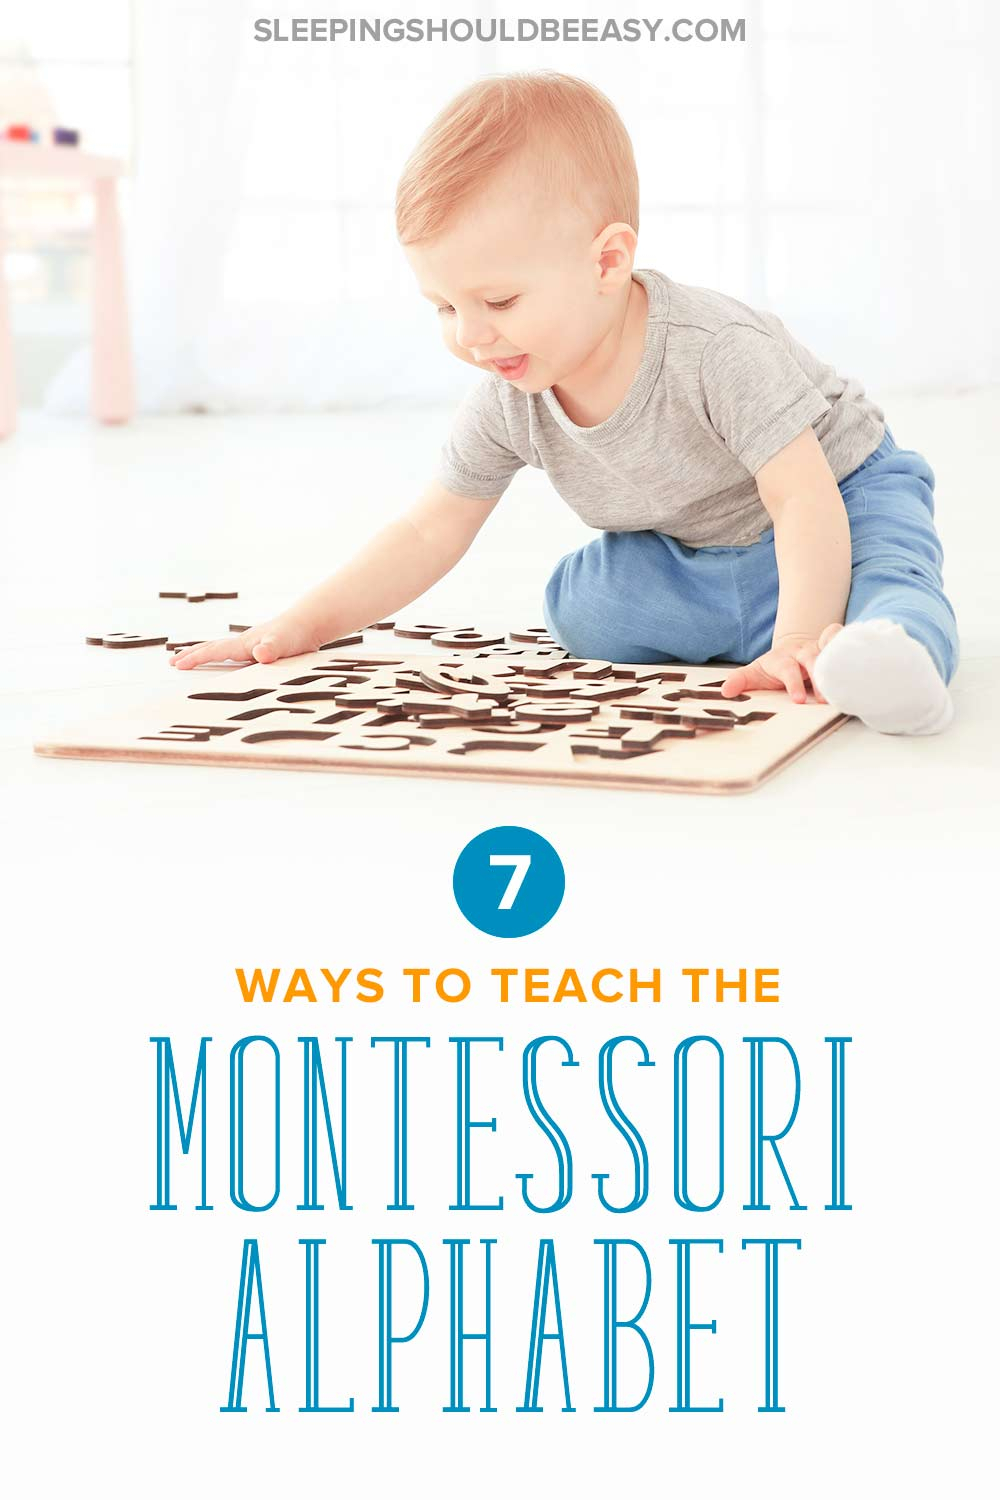 Teaching The Montessori Alphabet | Sleeping Should Be Easy within Montessori Tracing Letters